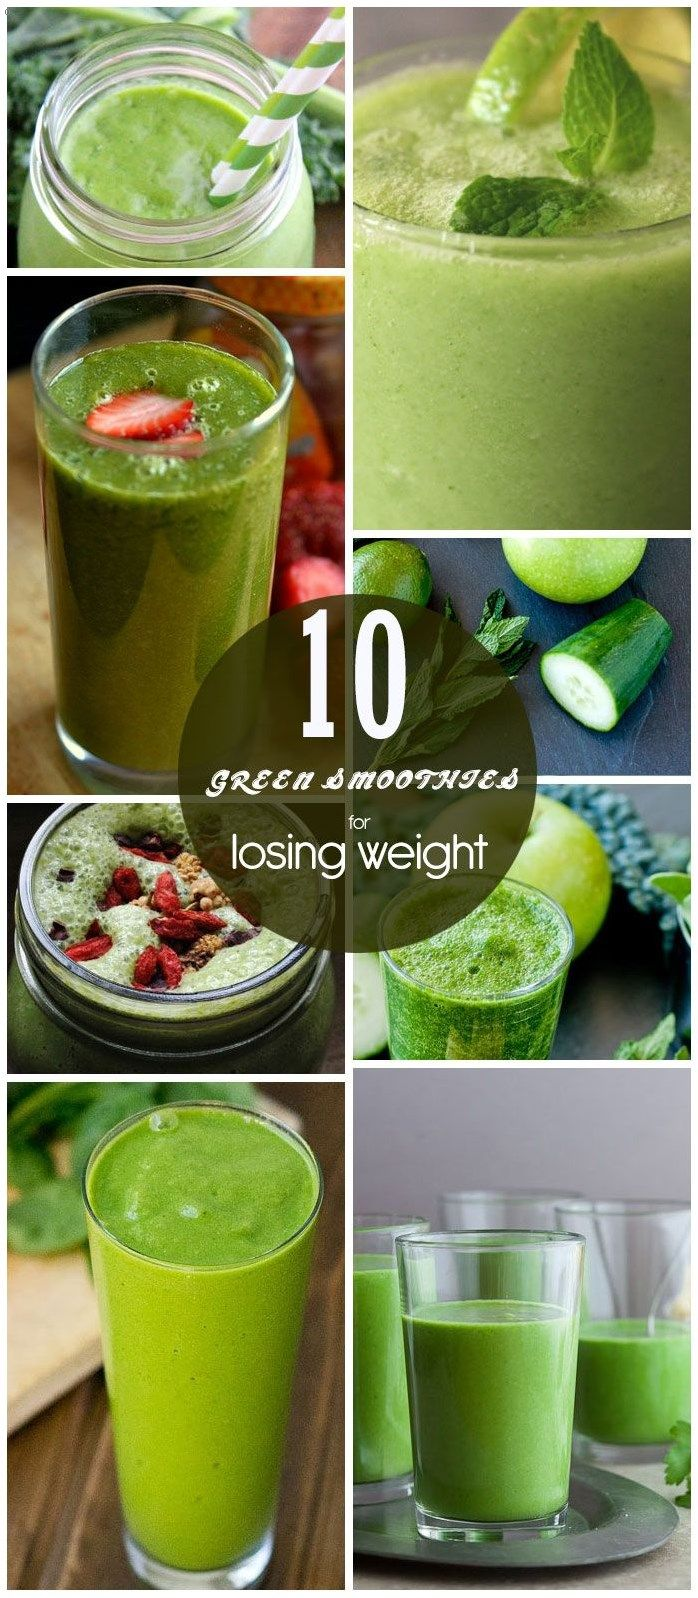 7 Healthy Green Smoothies to Lose Weight | Health ...